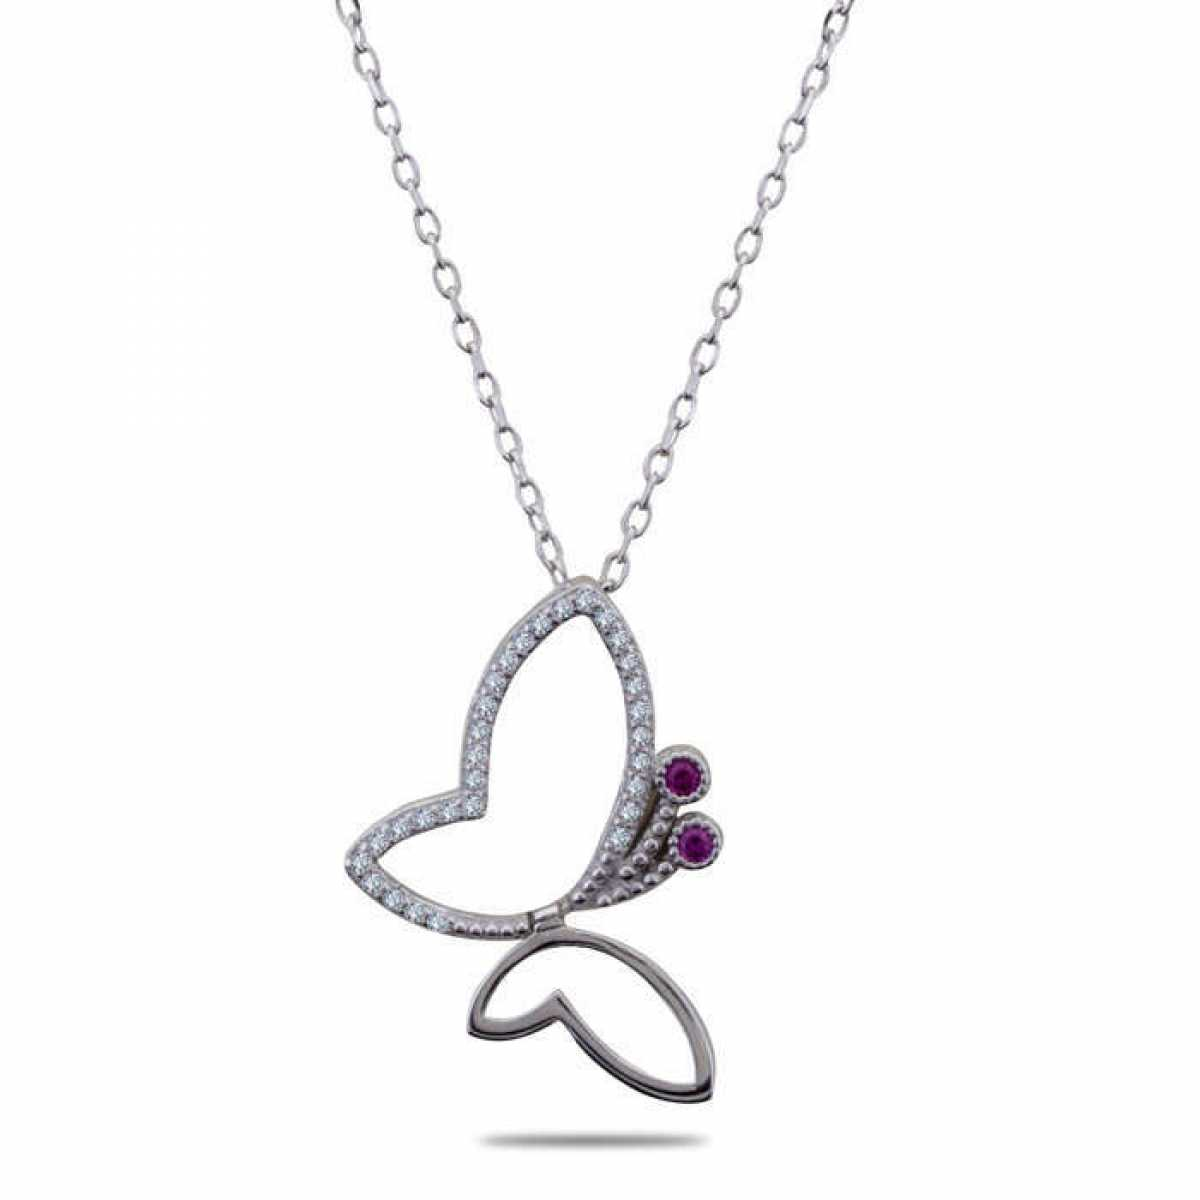 Pink & Silver Diamond Chain